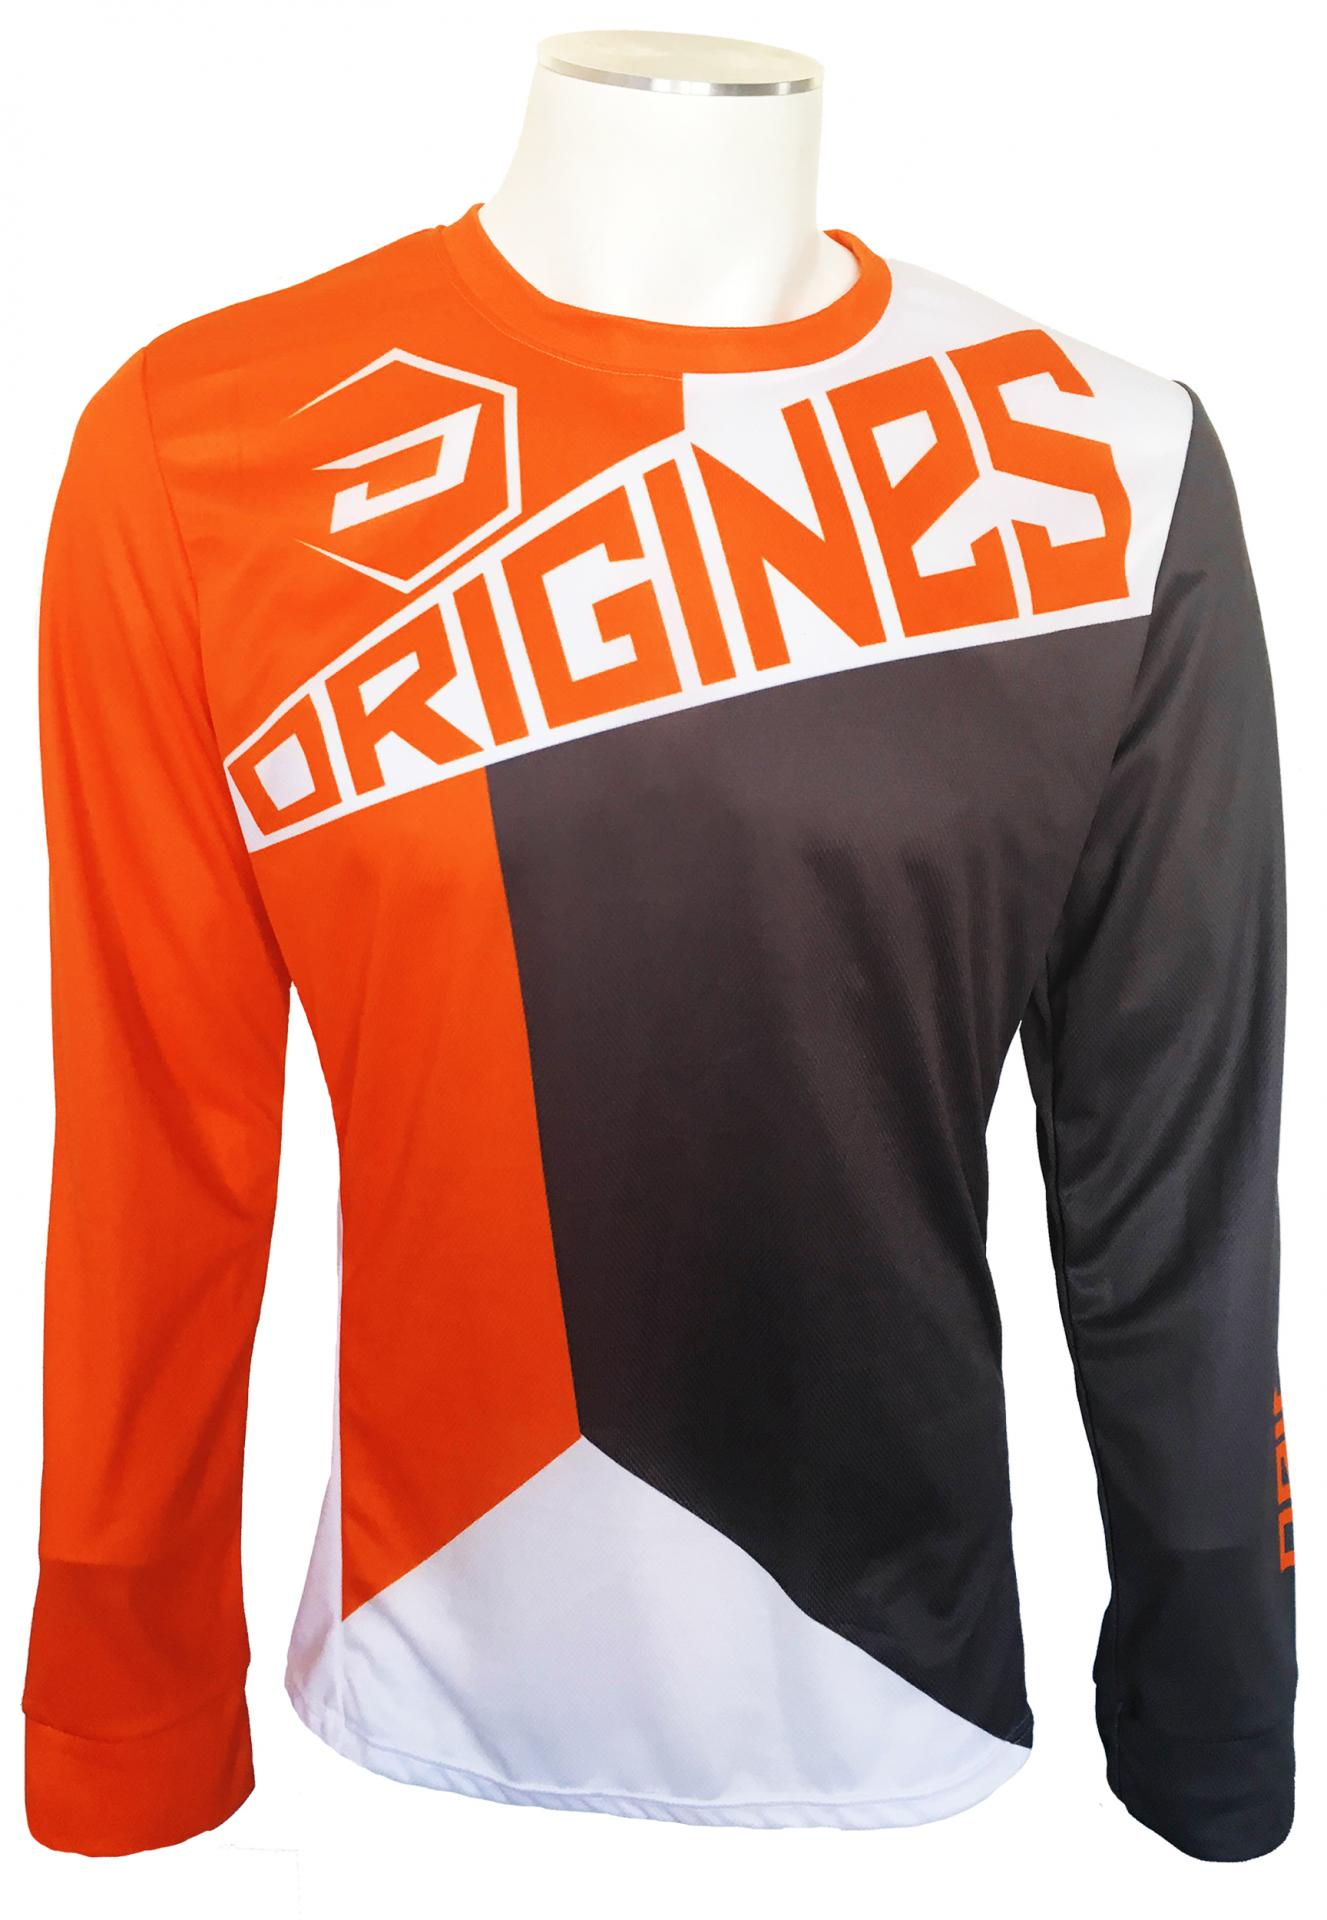 Maillot fraka orange face